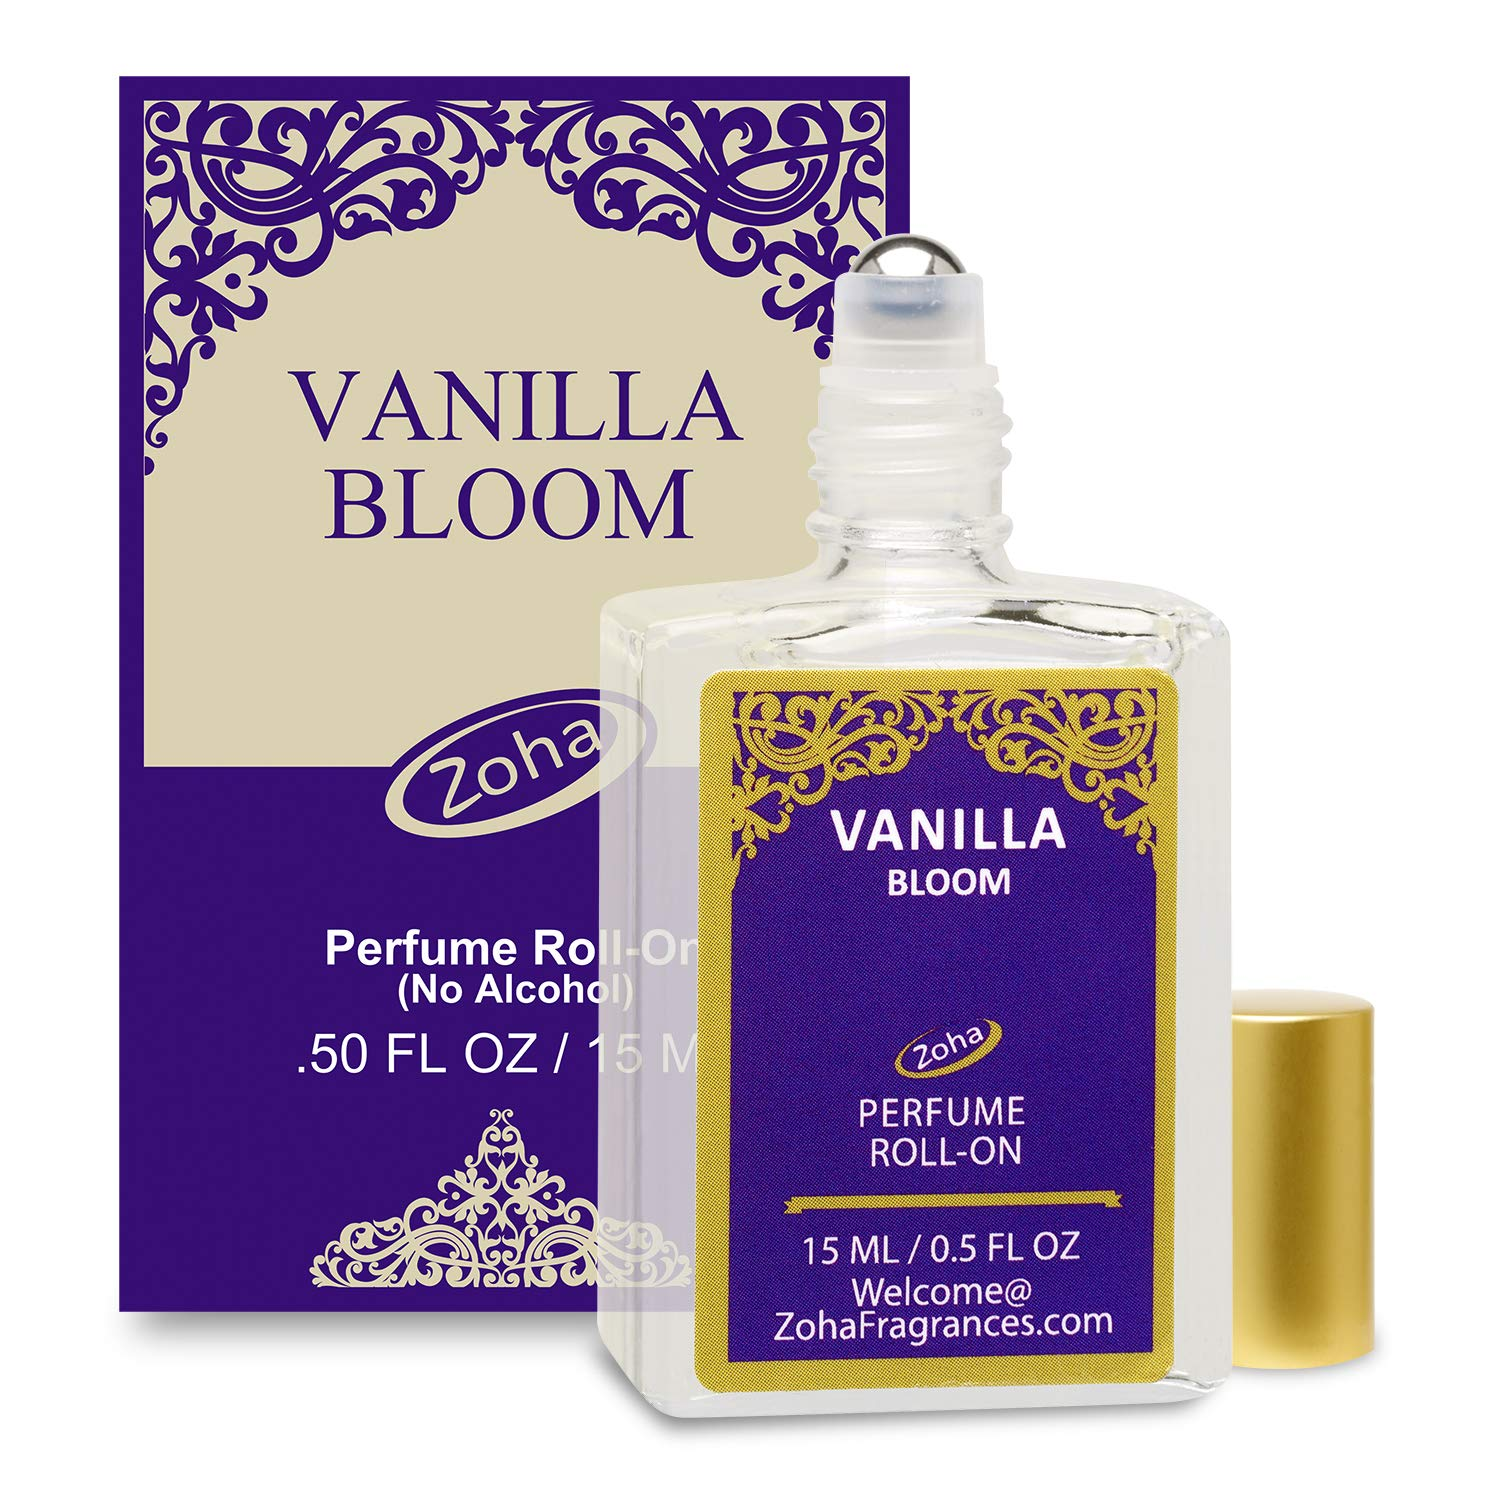 Vanilla Bloom Perfume Oil Roll-On (No Alcohol) - Essential Oils and Clean Beauty Perfumes for Women and Men by Zoha Fragrances, 15 ml / 0.50 fl Oz